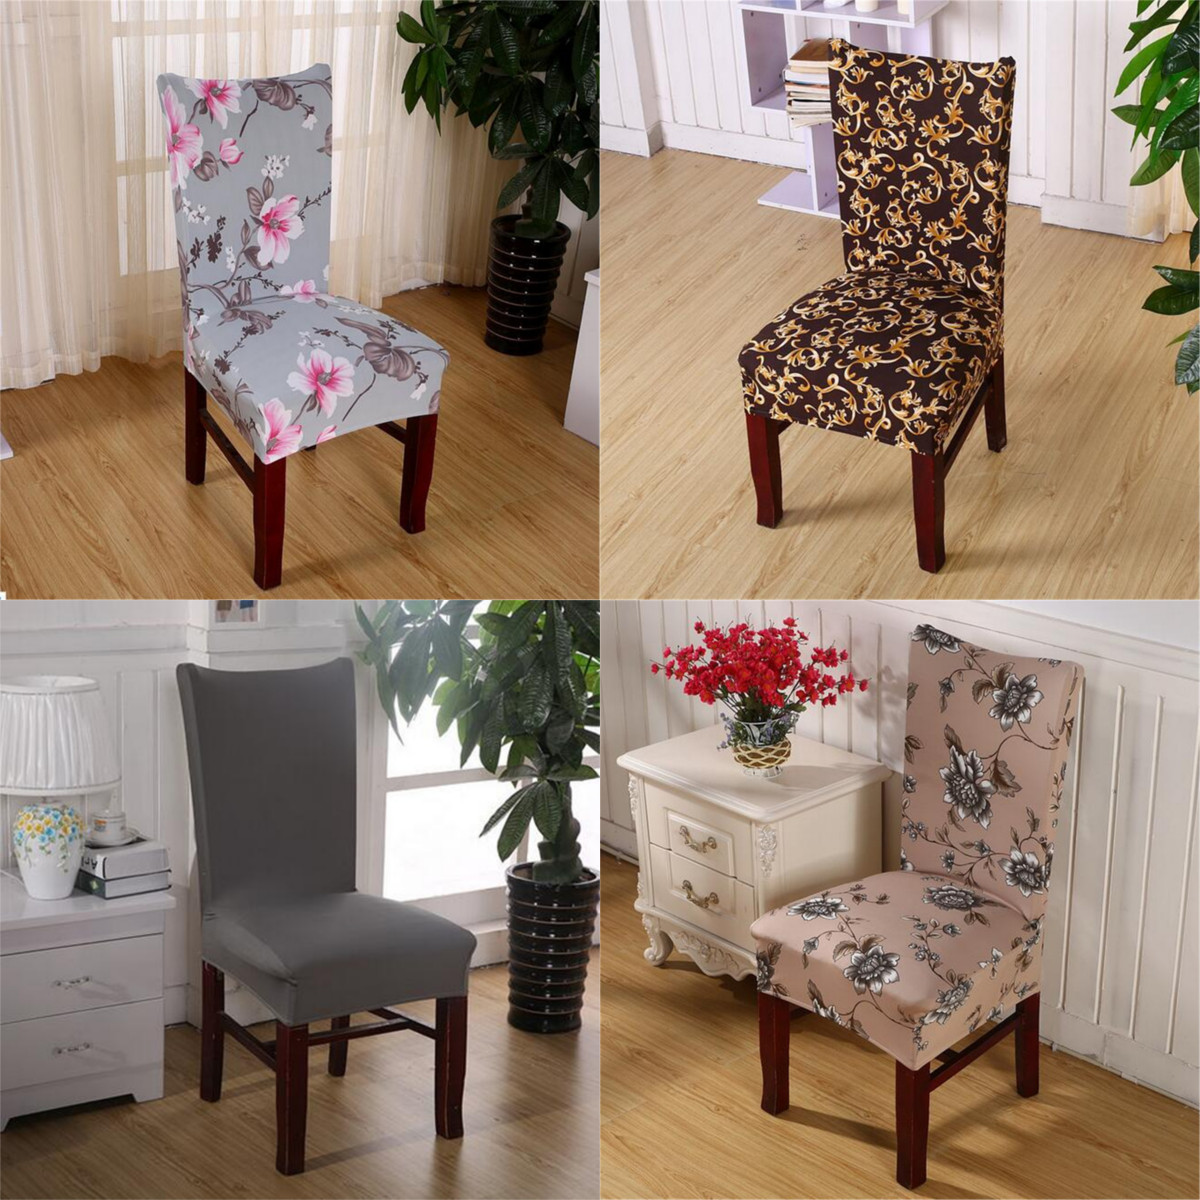 used spandex chair covers folding lawn lounger soft fit stretch short dining room with printed pattern banquet seat protector slipcover for hone party hotel